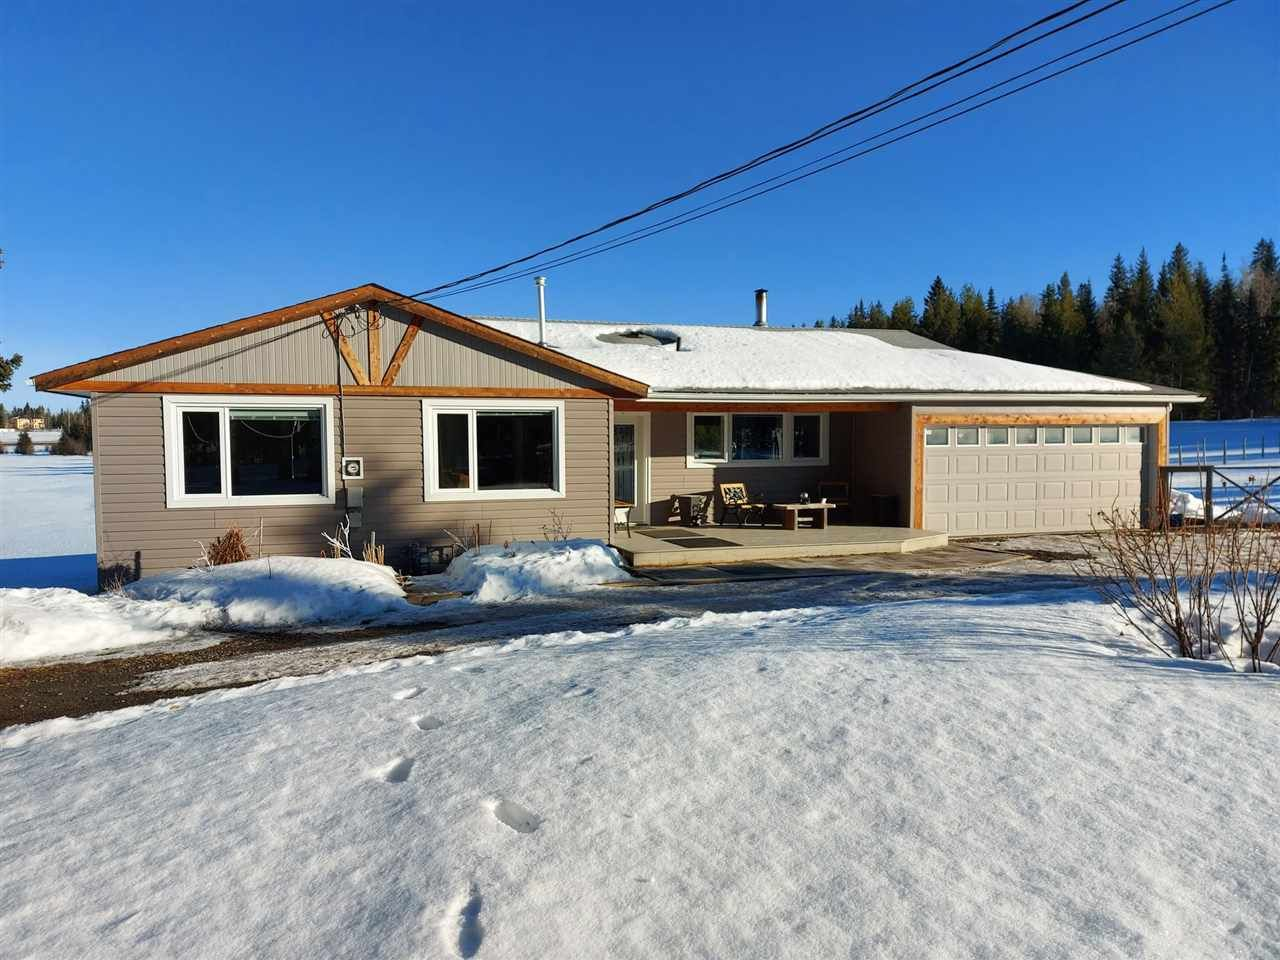 Main Photo: 8488 BILNOR Road in Prince George: Gauthier House for sale (PG City South (Zone 74))  : MLS®# R2548812